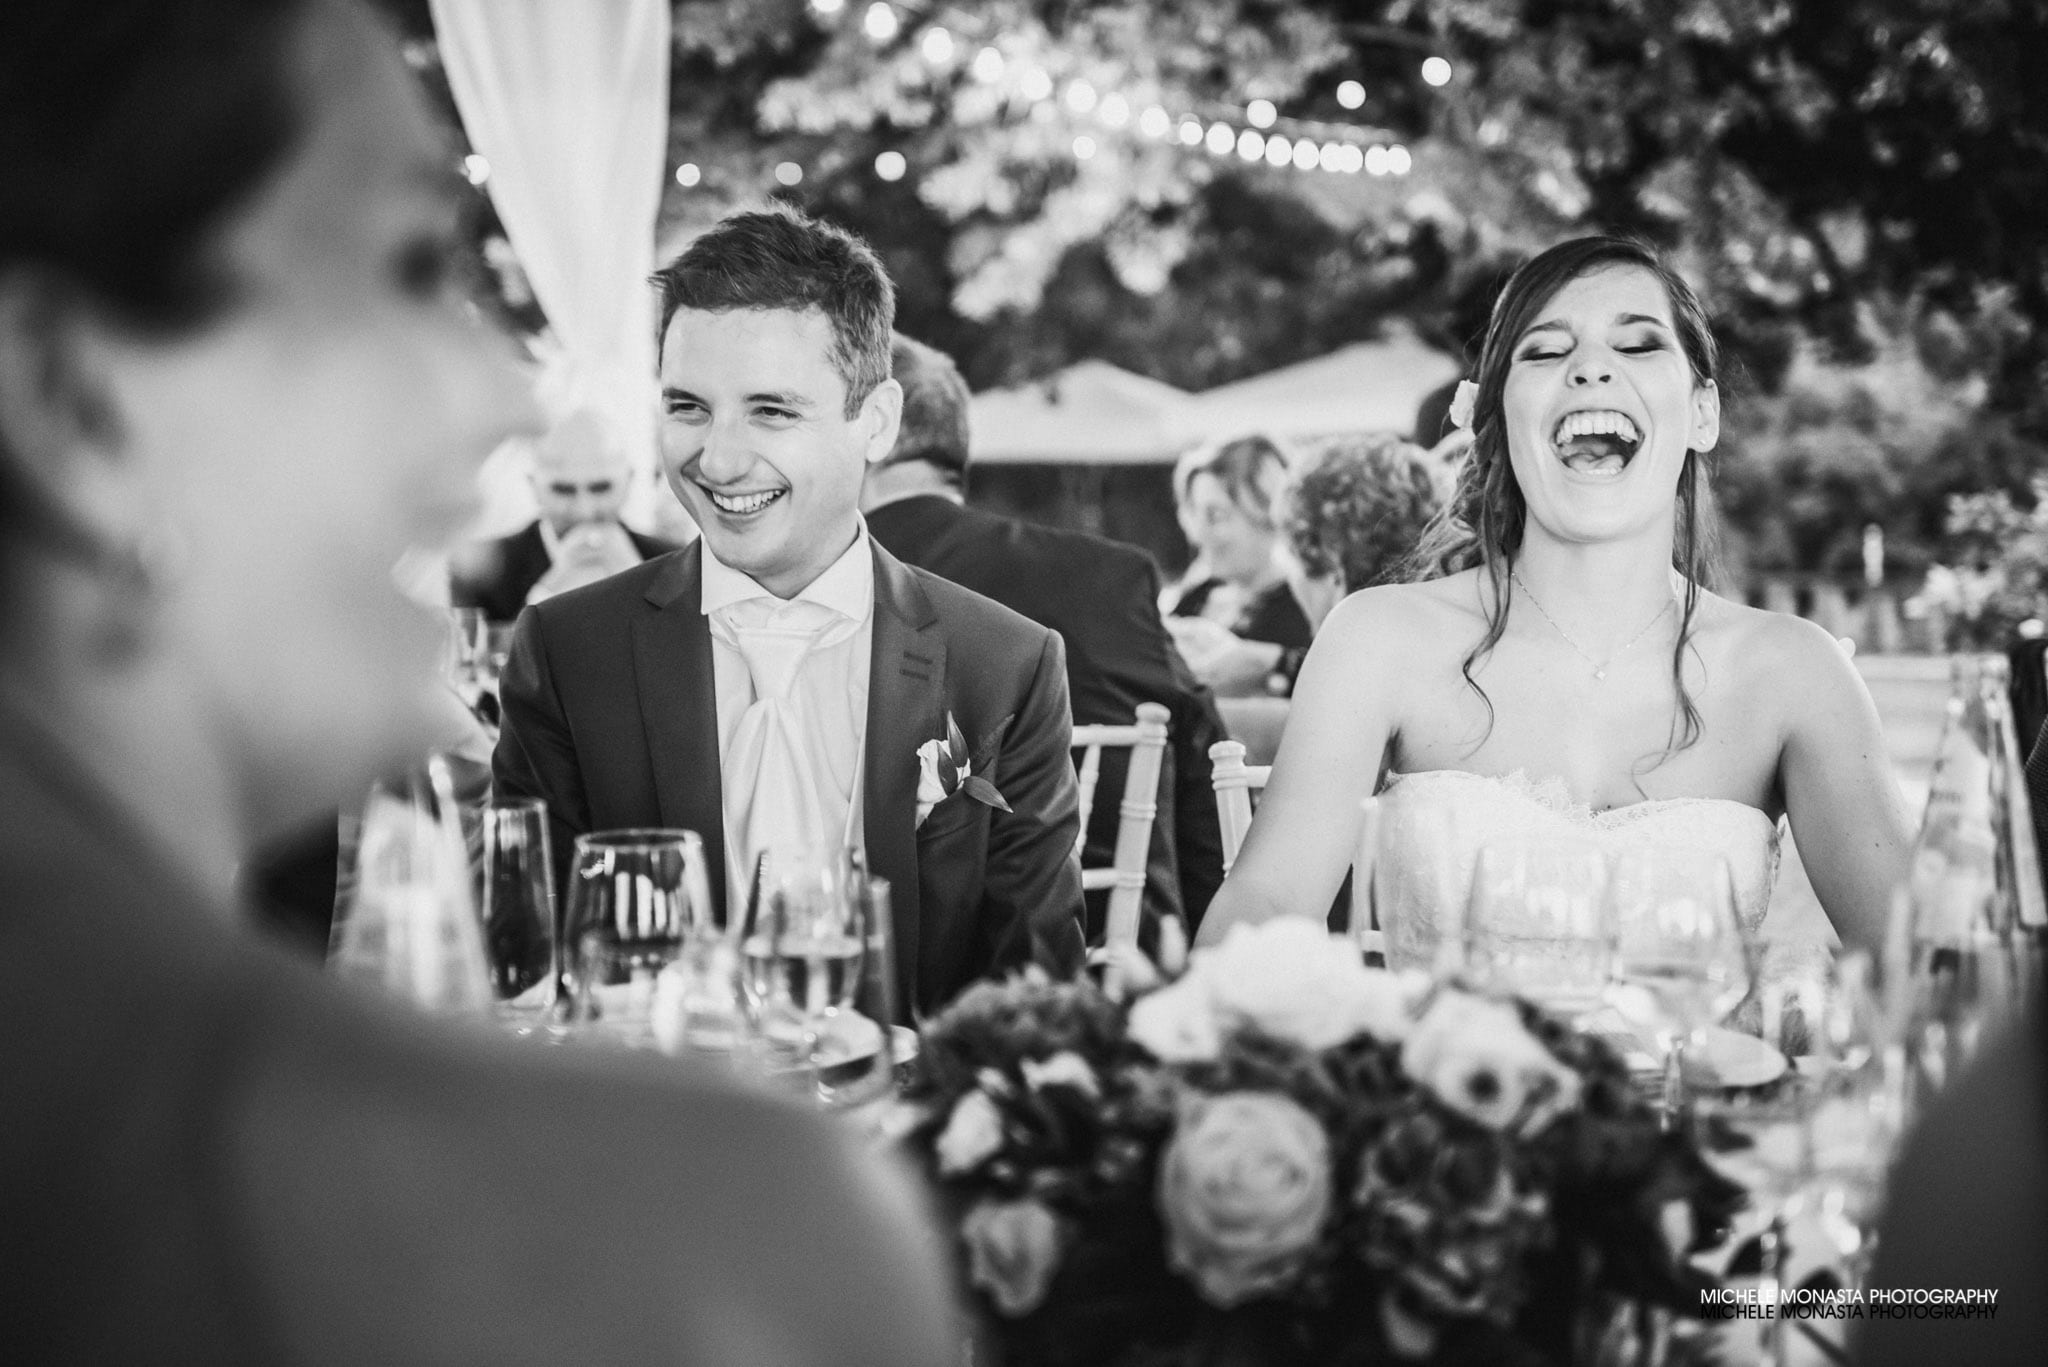 The bride and the groom laugh during their wedding dinner in Tuscany